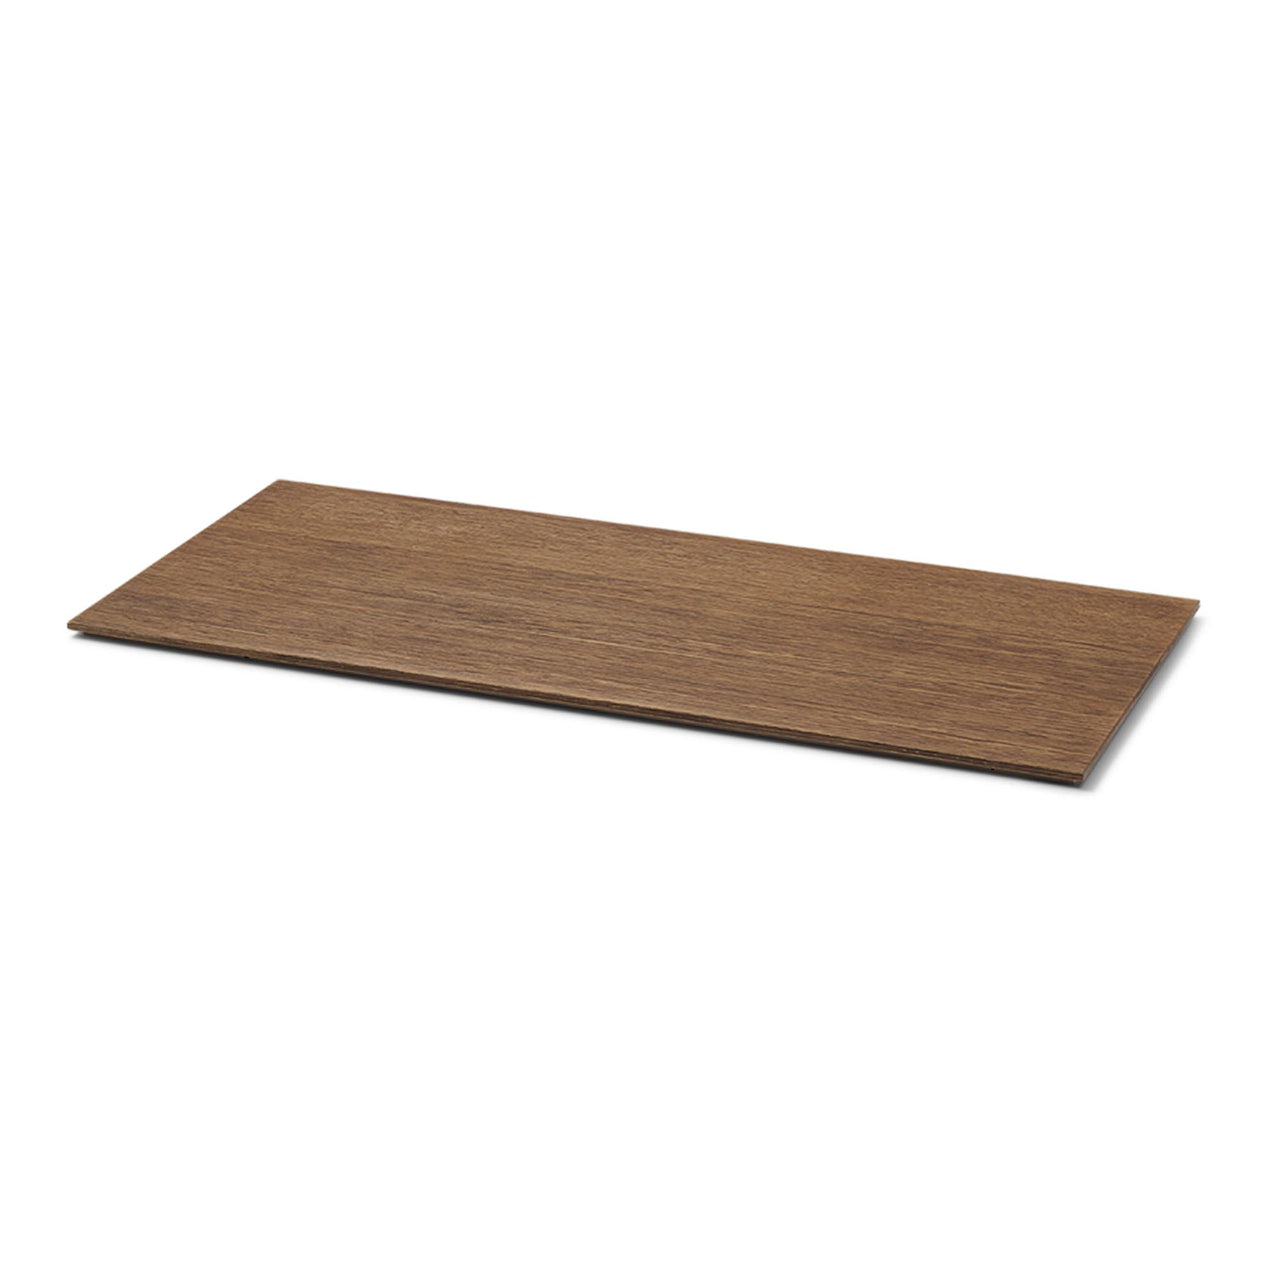 Top for Plant Box Large - Smoked Oak